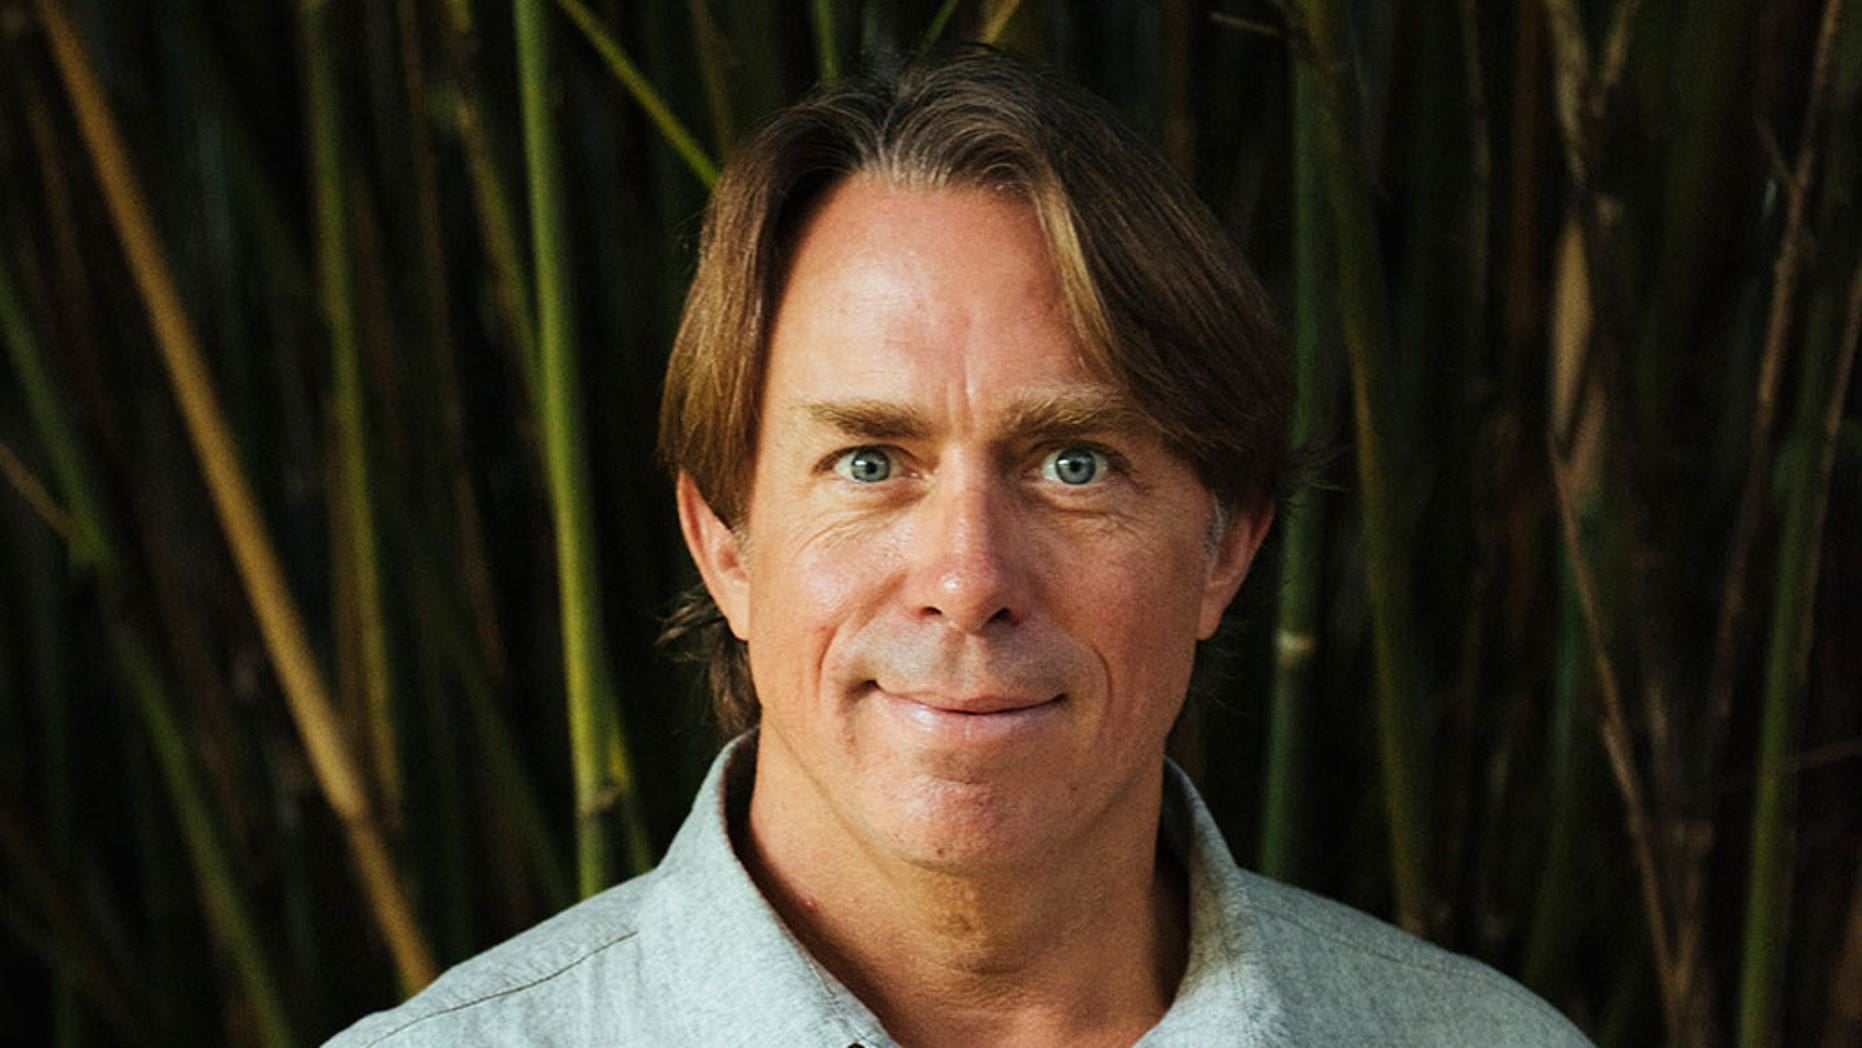 John Besh is giving back to his community any way he can.